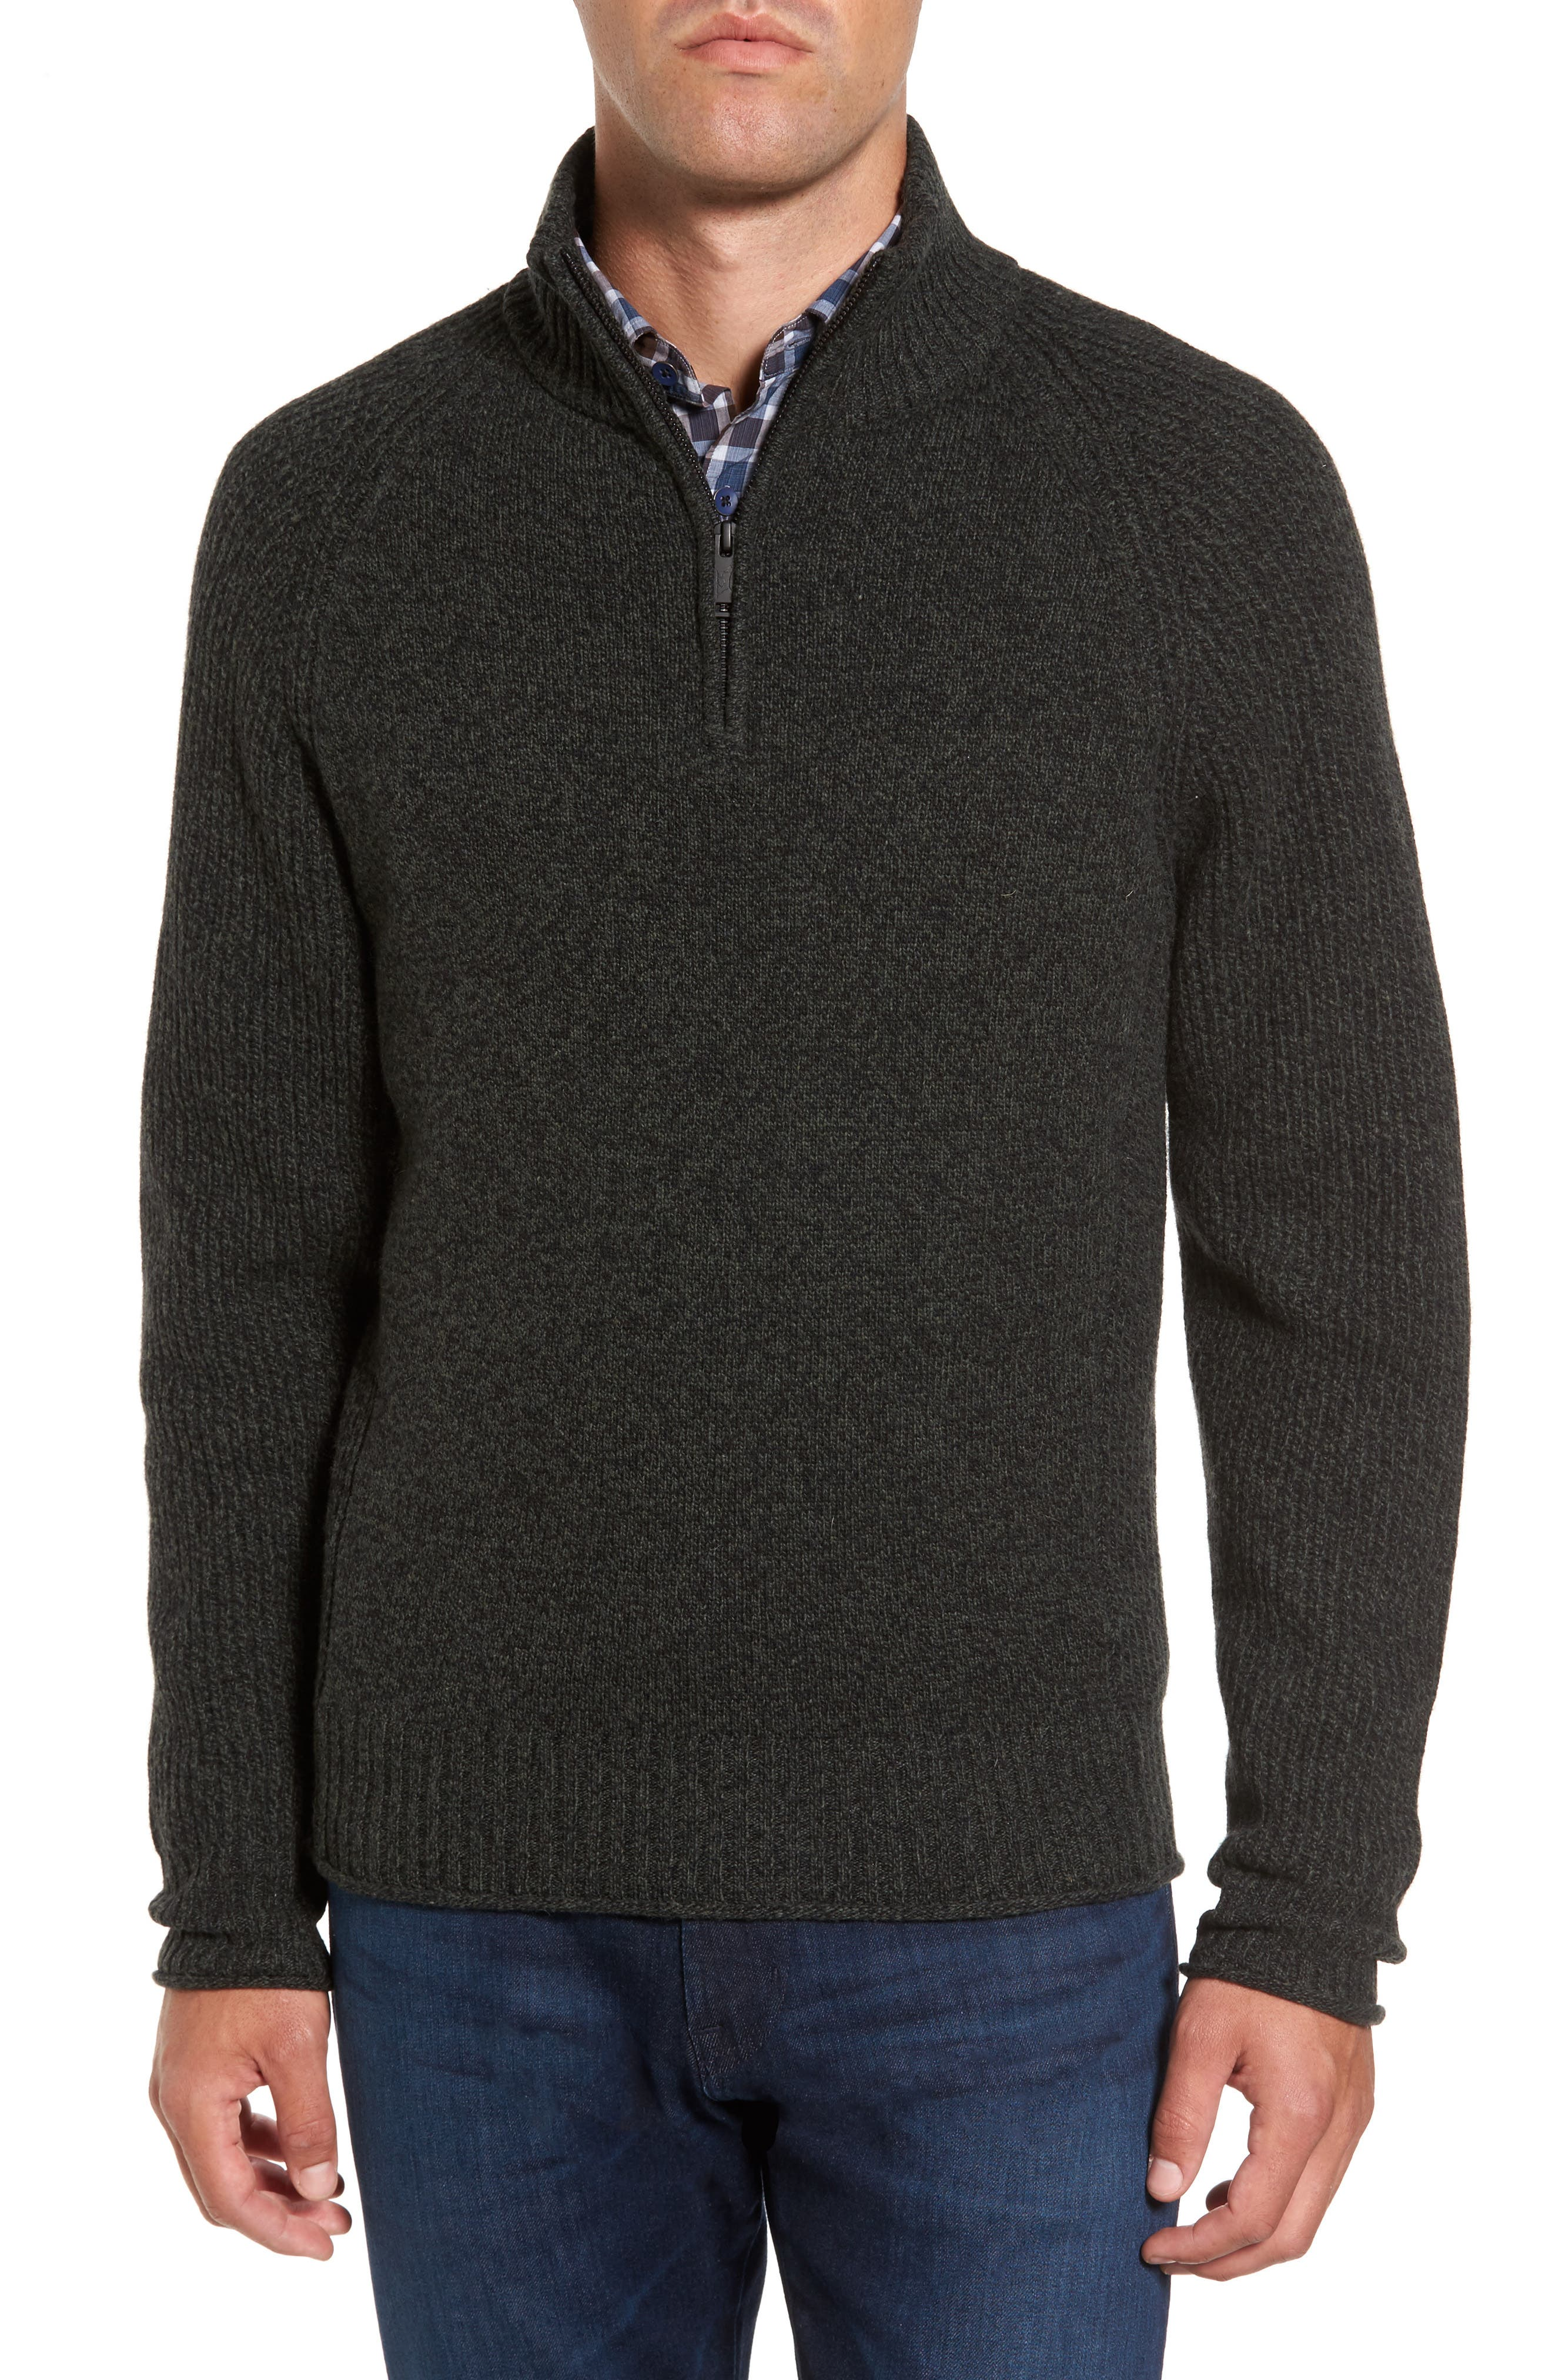 Stredwick Lambswool Sweater,                         Main,                         color, Forest